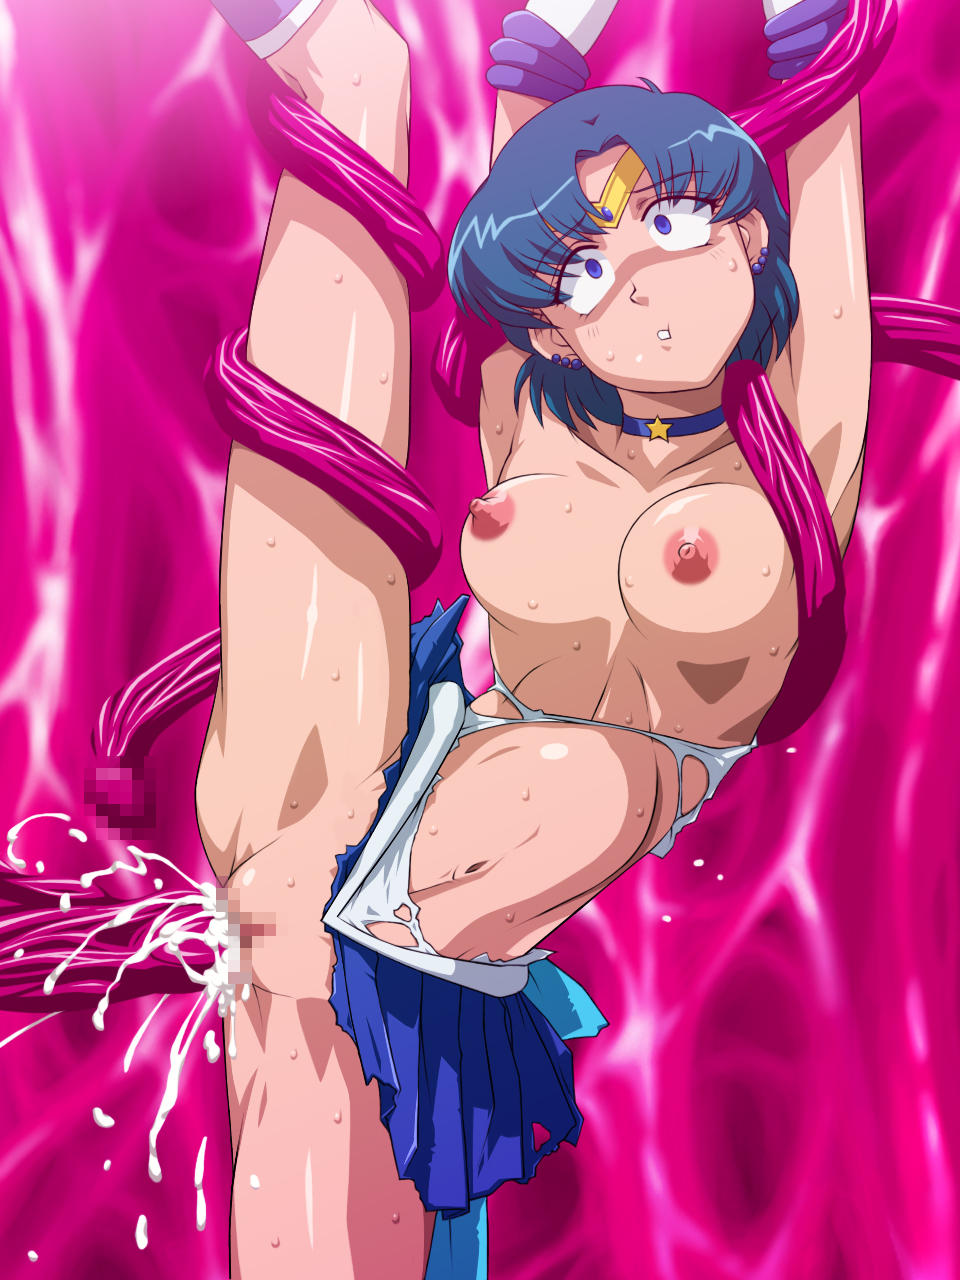 Sailor moon tentacle hentai fucked